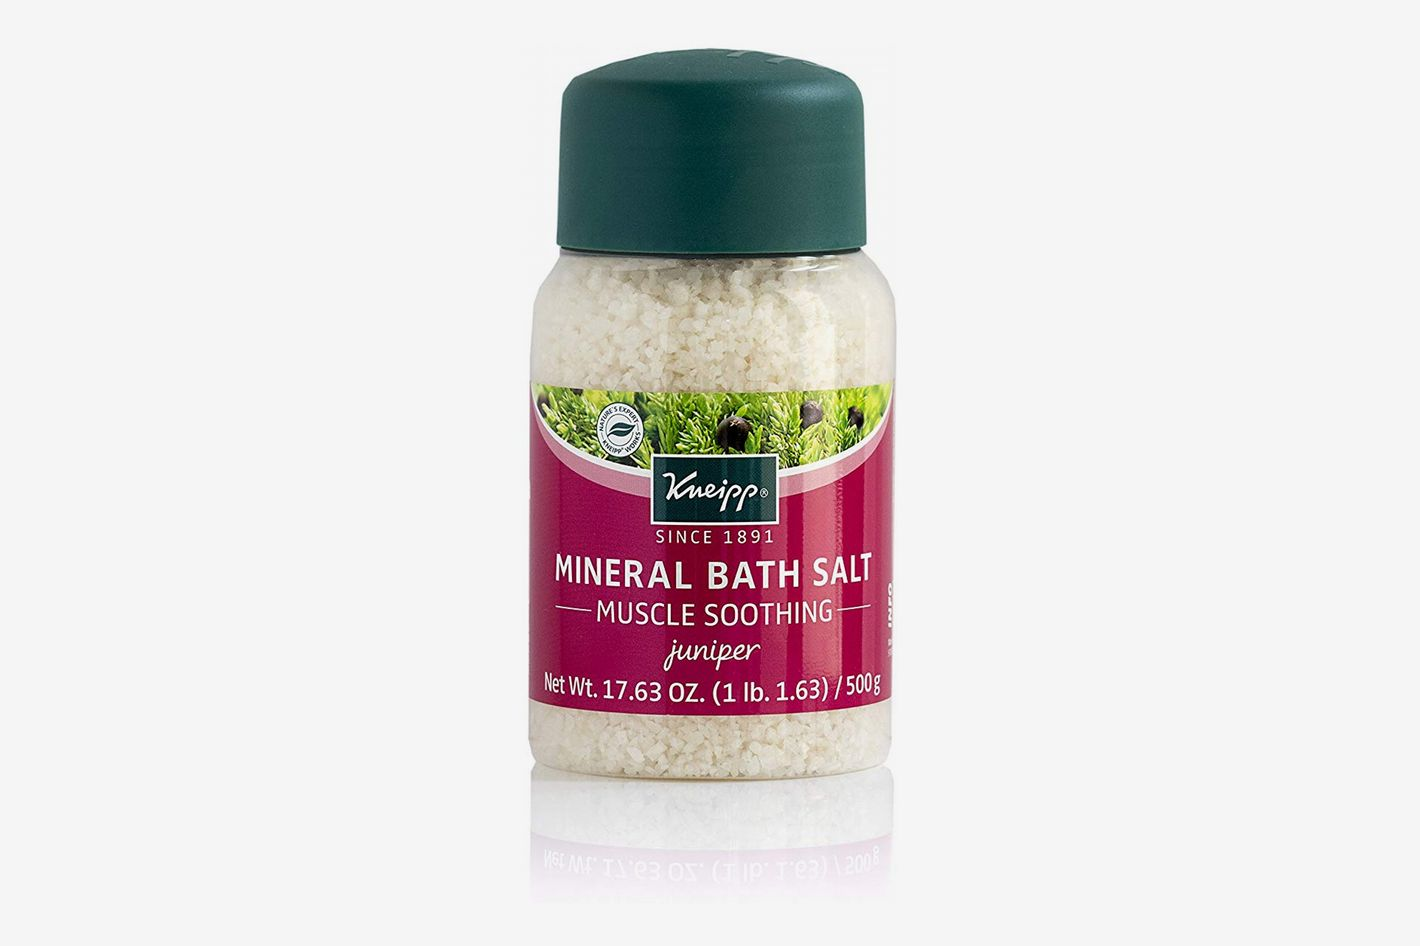 Kneipp Mineral Bath Salt, Muscle Soothing, Juniper